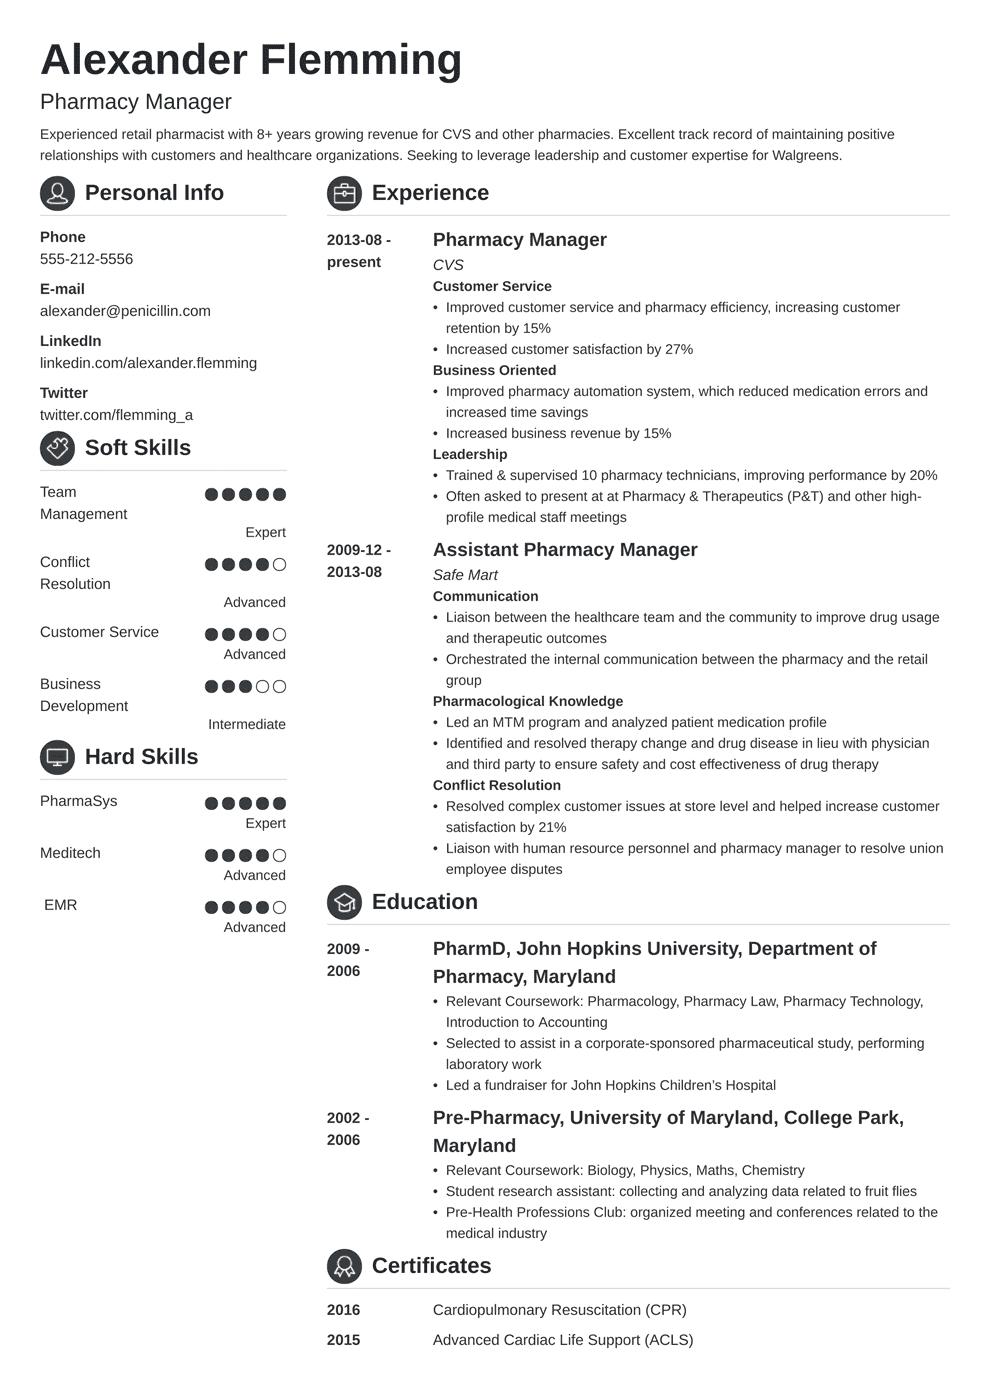 Pharmacist Resume: Sample & Complete Guide [+20 Examples]